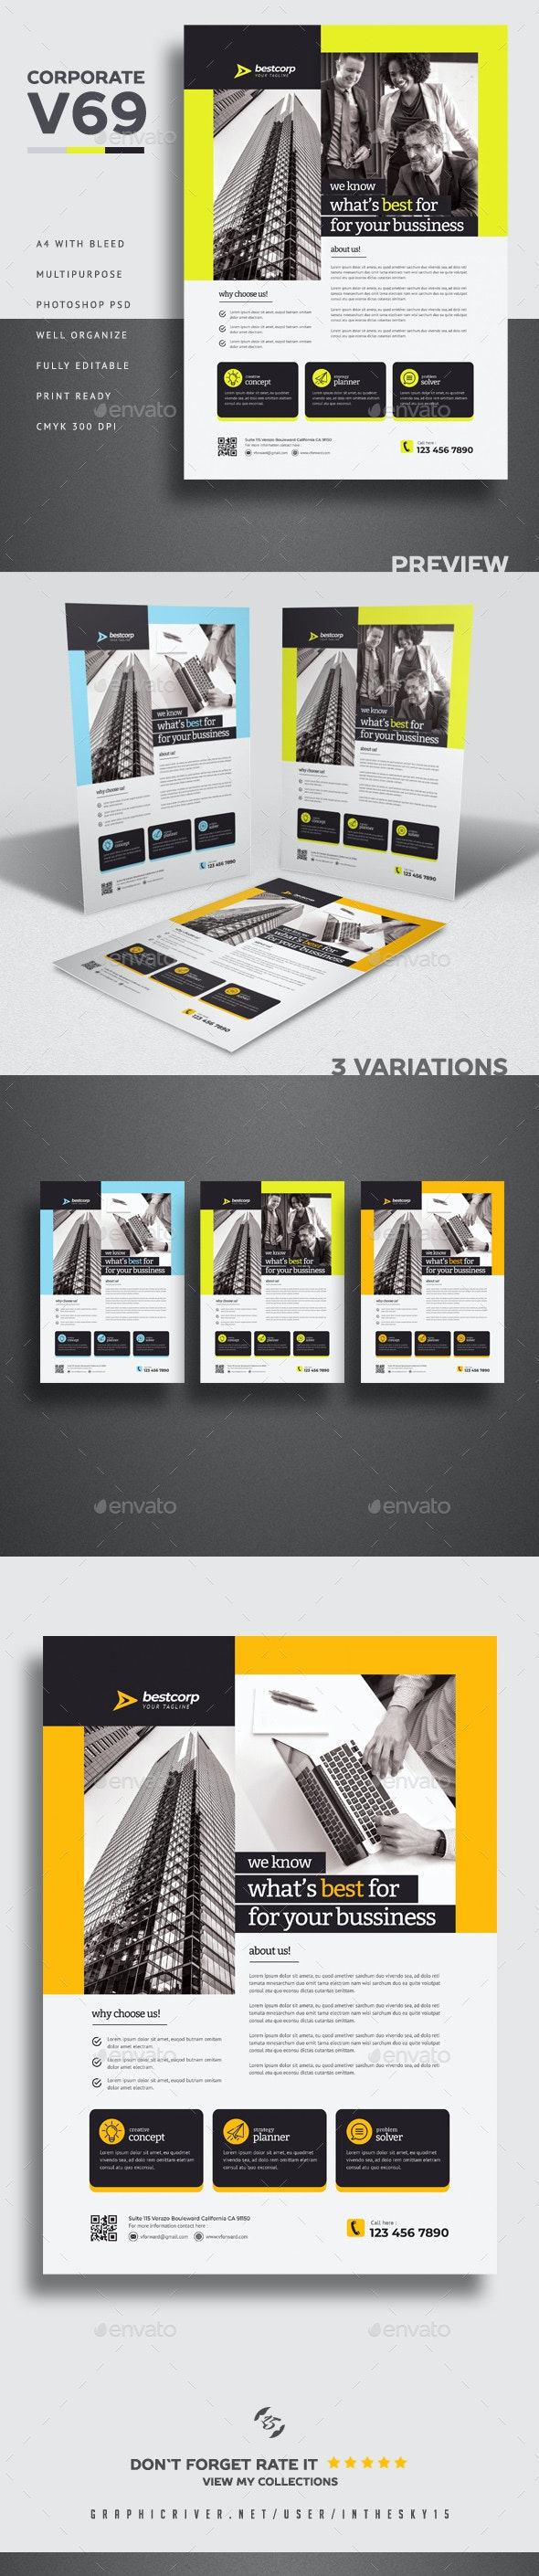 Corporate V69 Flyer - Flyers Print Templates